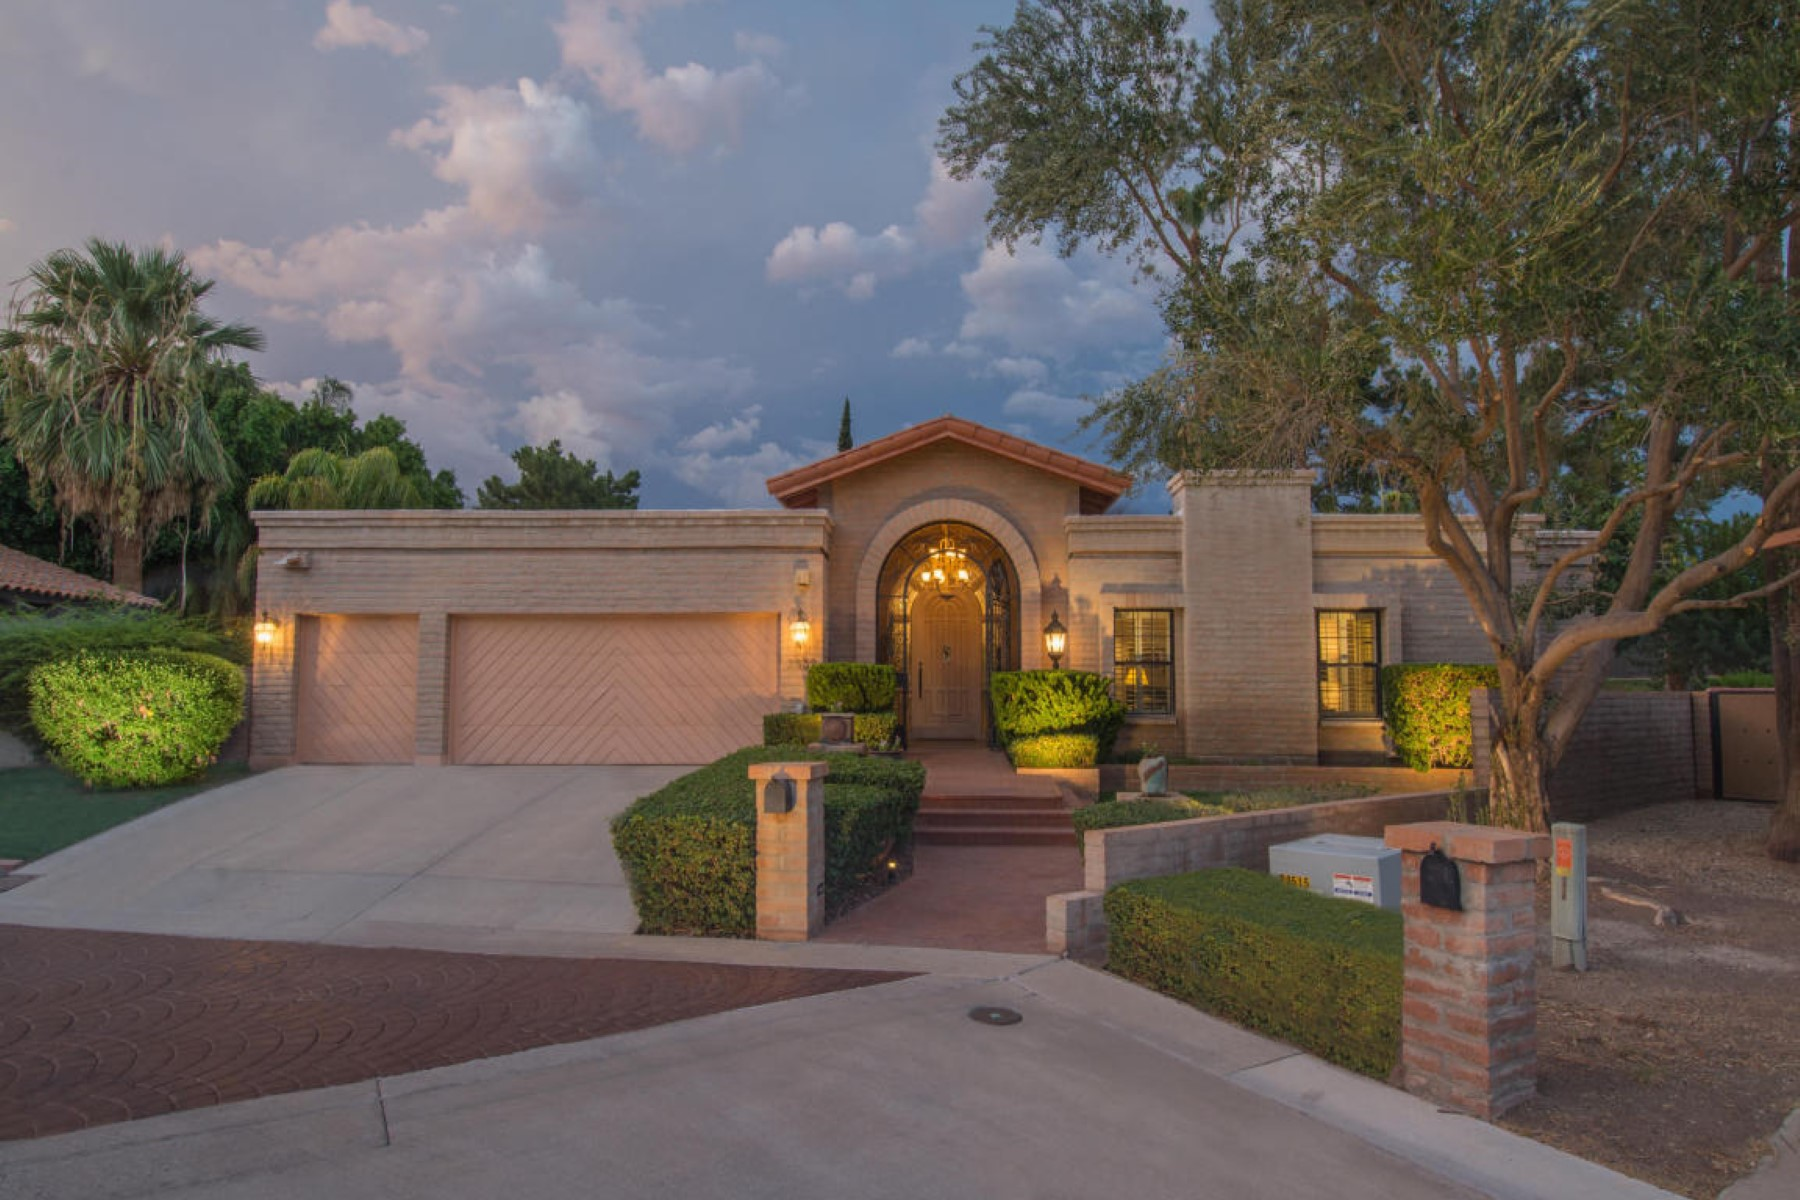 단독 가정 주택 용 매매 에 Charming home in the highly sought after Arizona Biltmore community of Taliverde 2532 E Marshall Ave Phoenix, 아리조나, 85016 미국